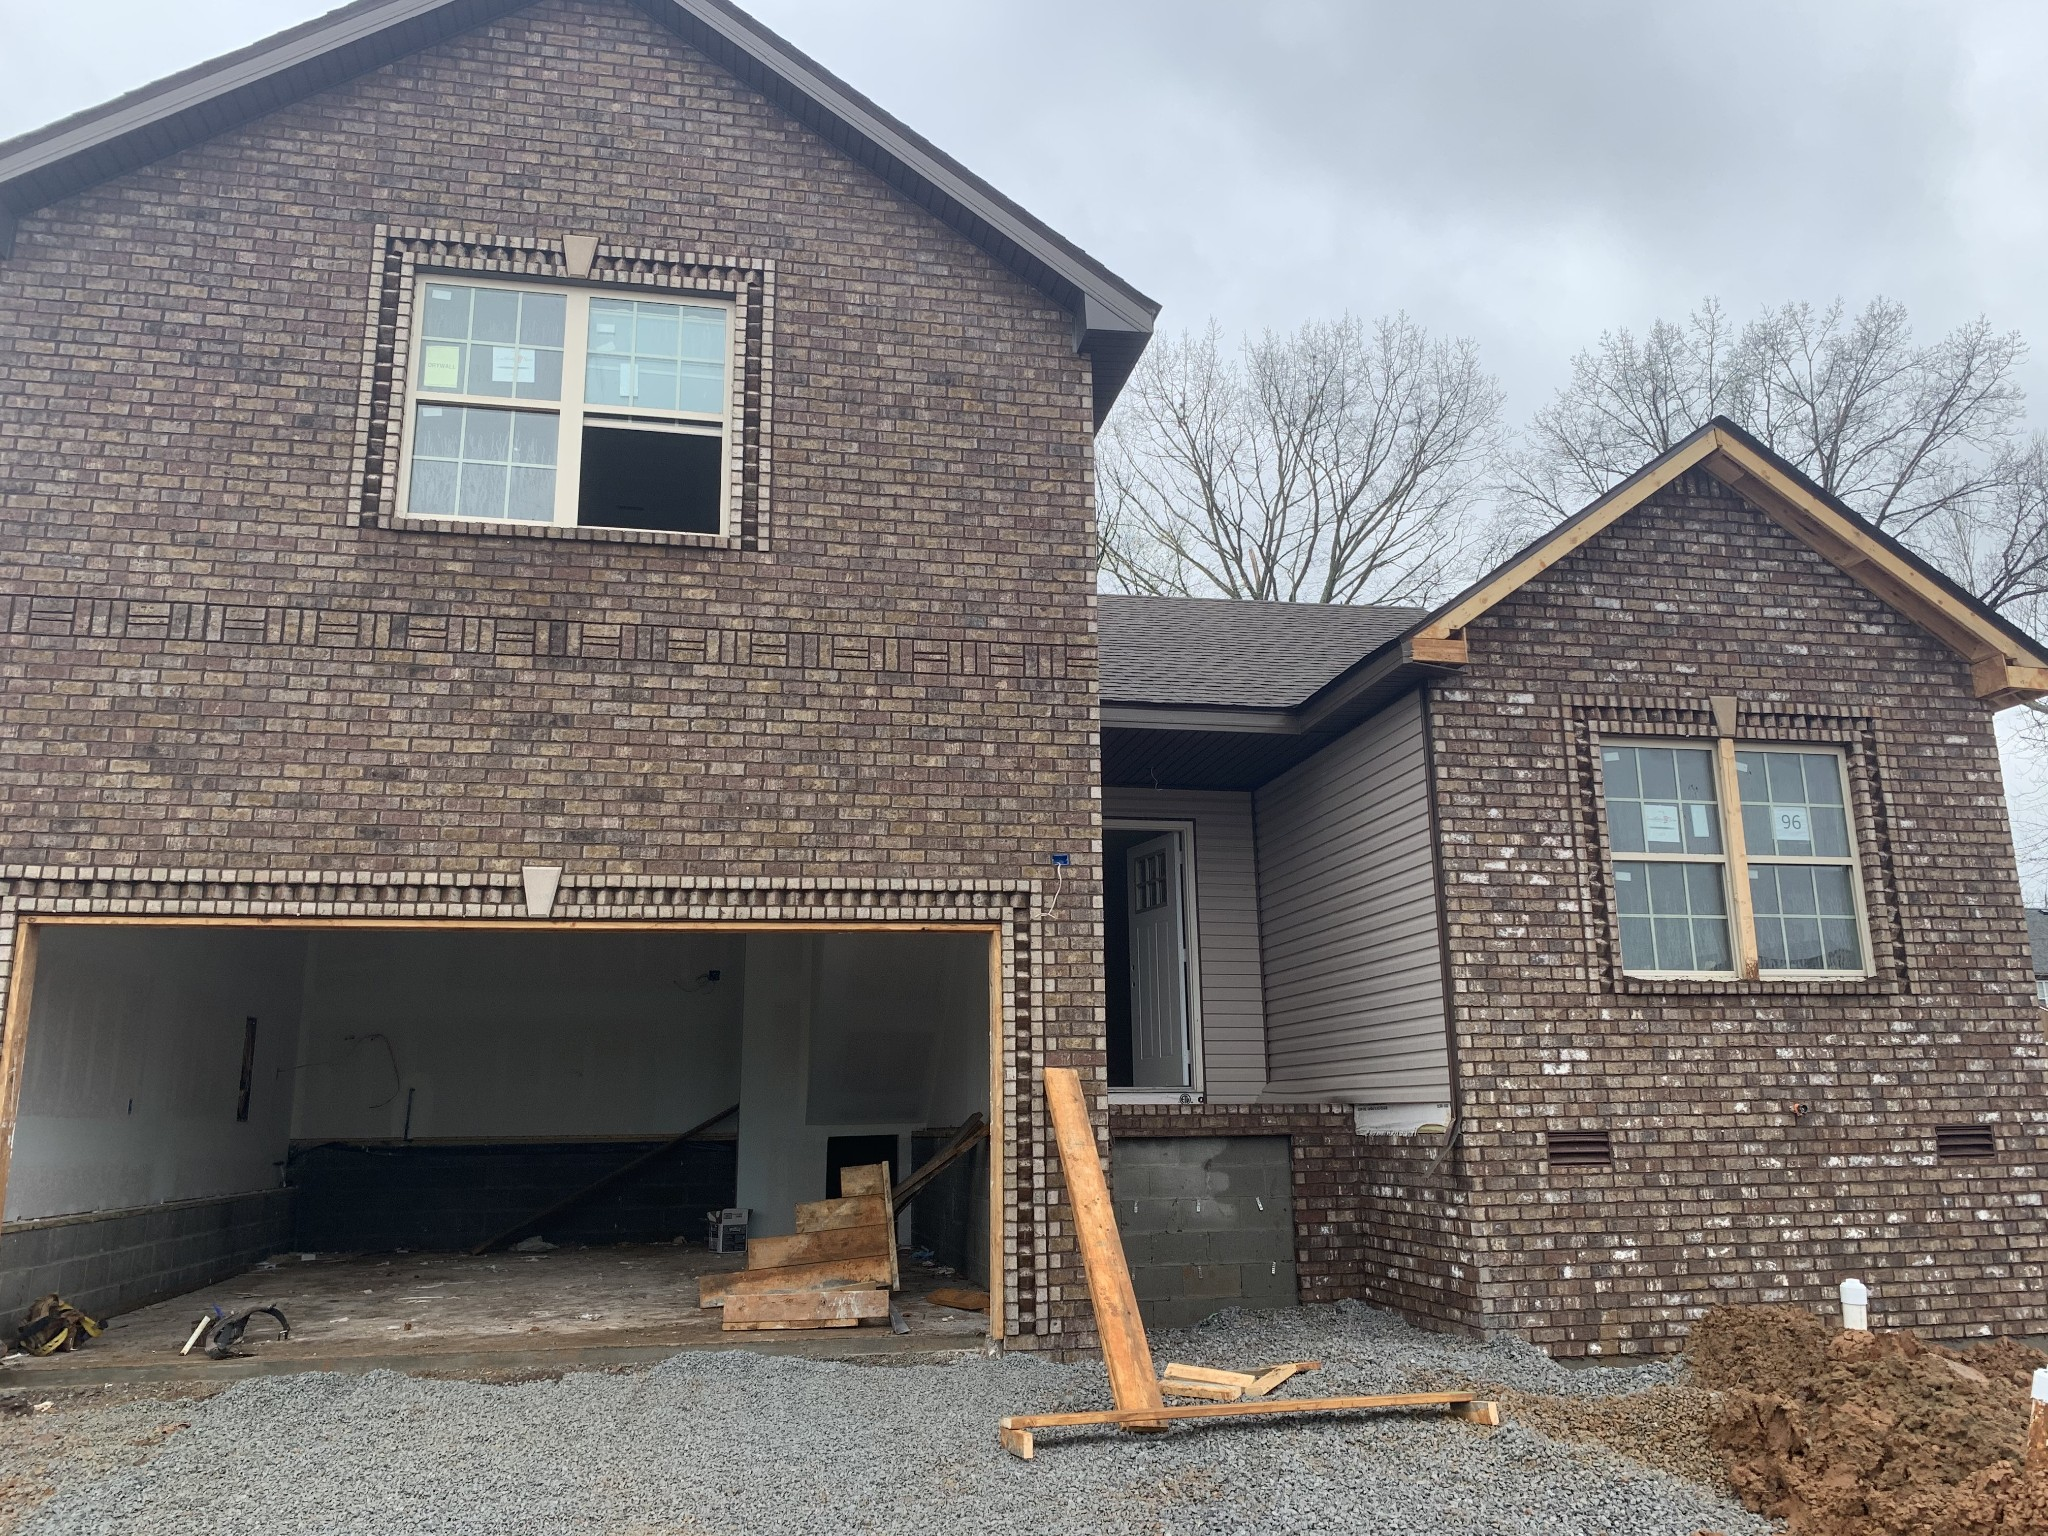 96 ANDERSON PLACE, Clarksville, TN 37042 - Clarksville, TN real estate listing